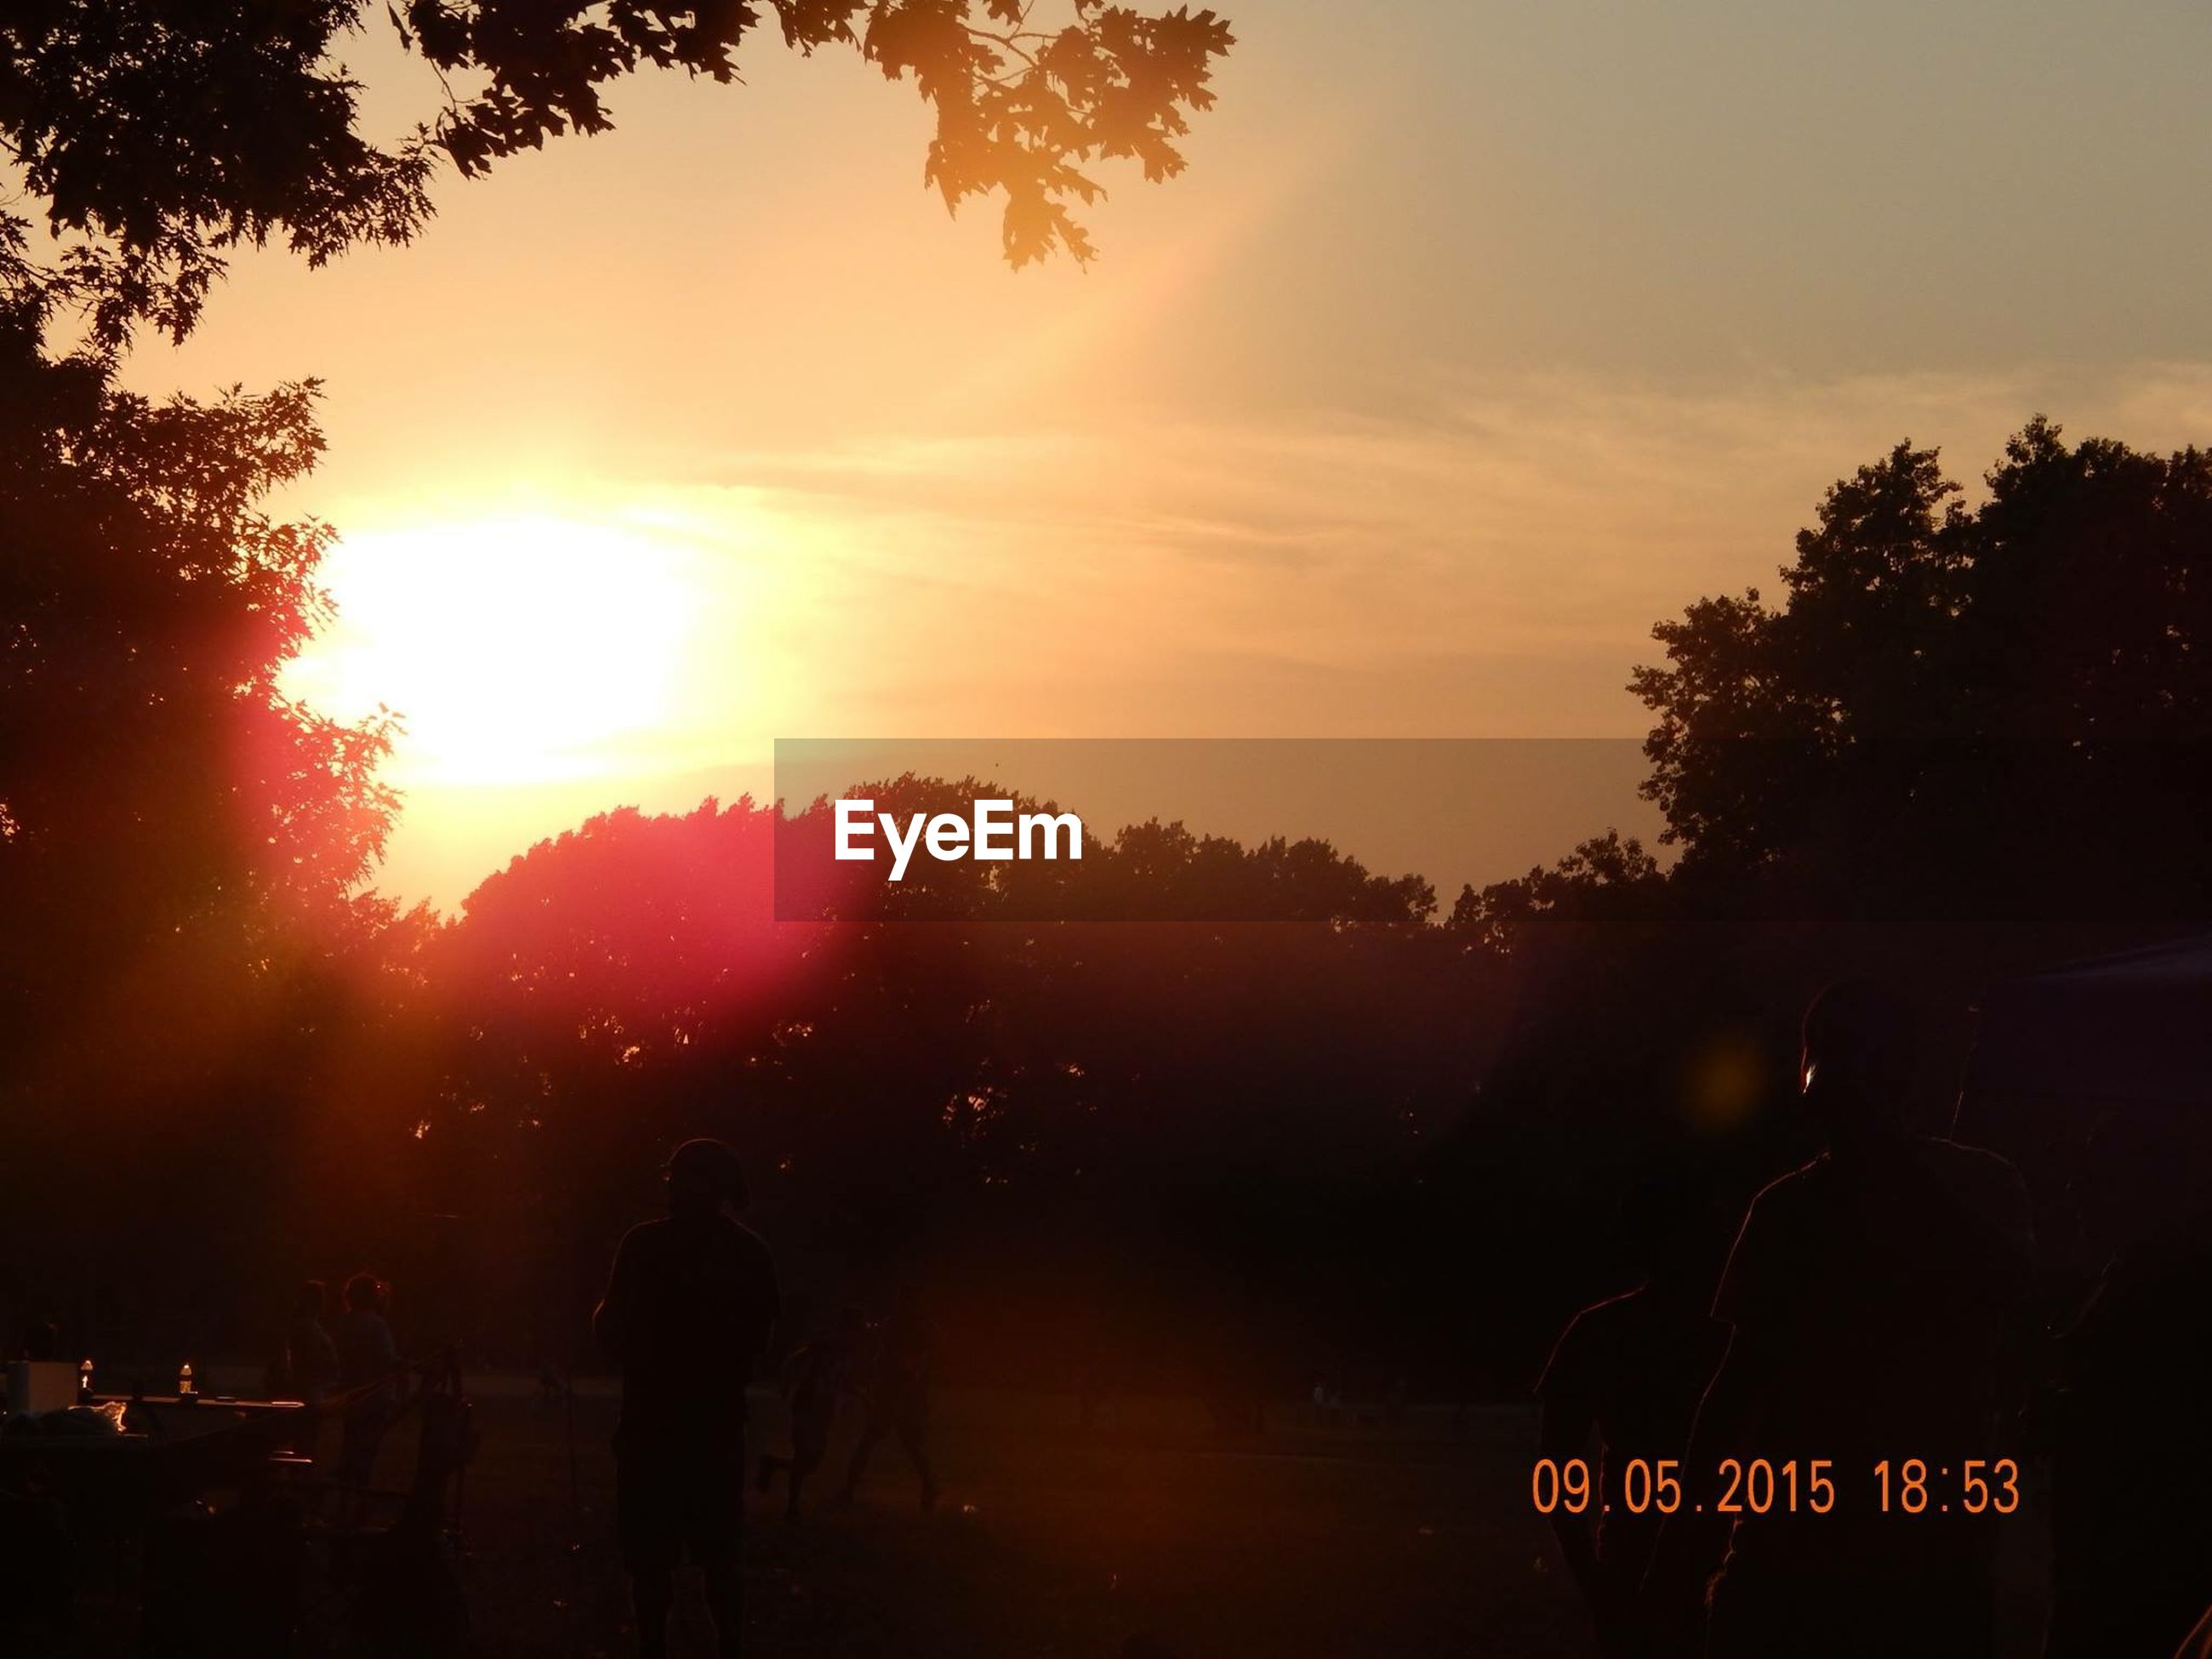 sunset, tree, silhouette, sun, orange color, sky, beauty in nature, sunlight, scenics, nature, sunbeam, tranquility, tranquil scene, lens flare, idyllic, outdoors, growth, branch, back lit, cloud - sky